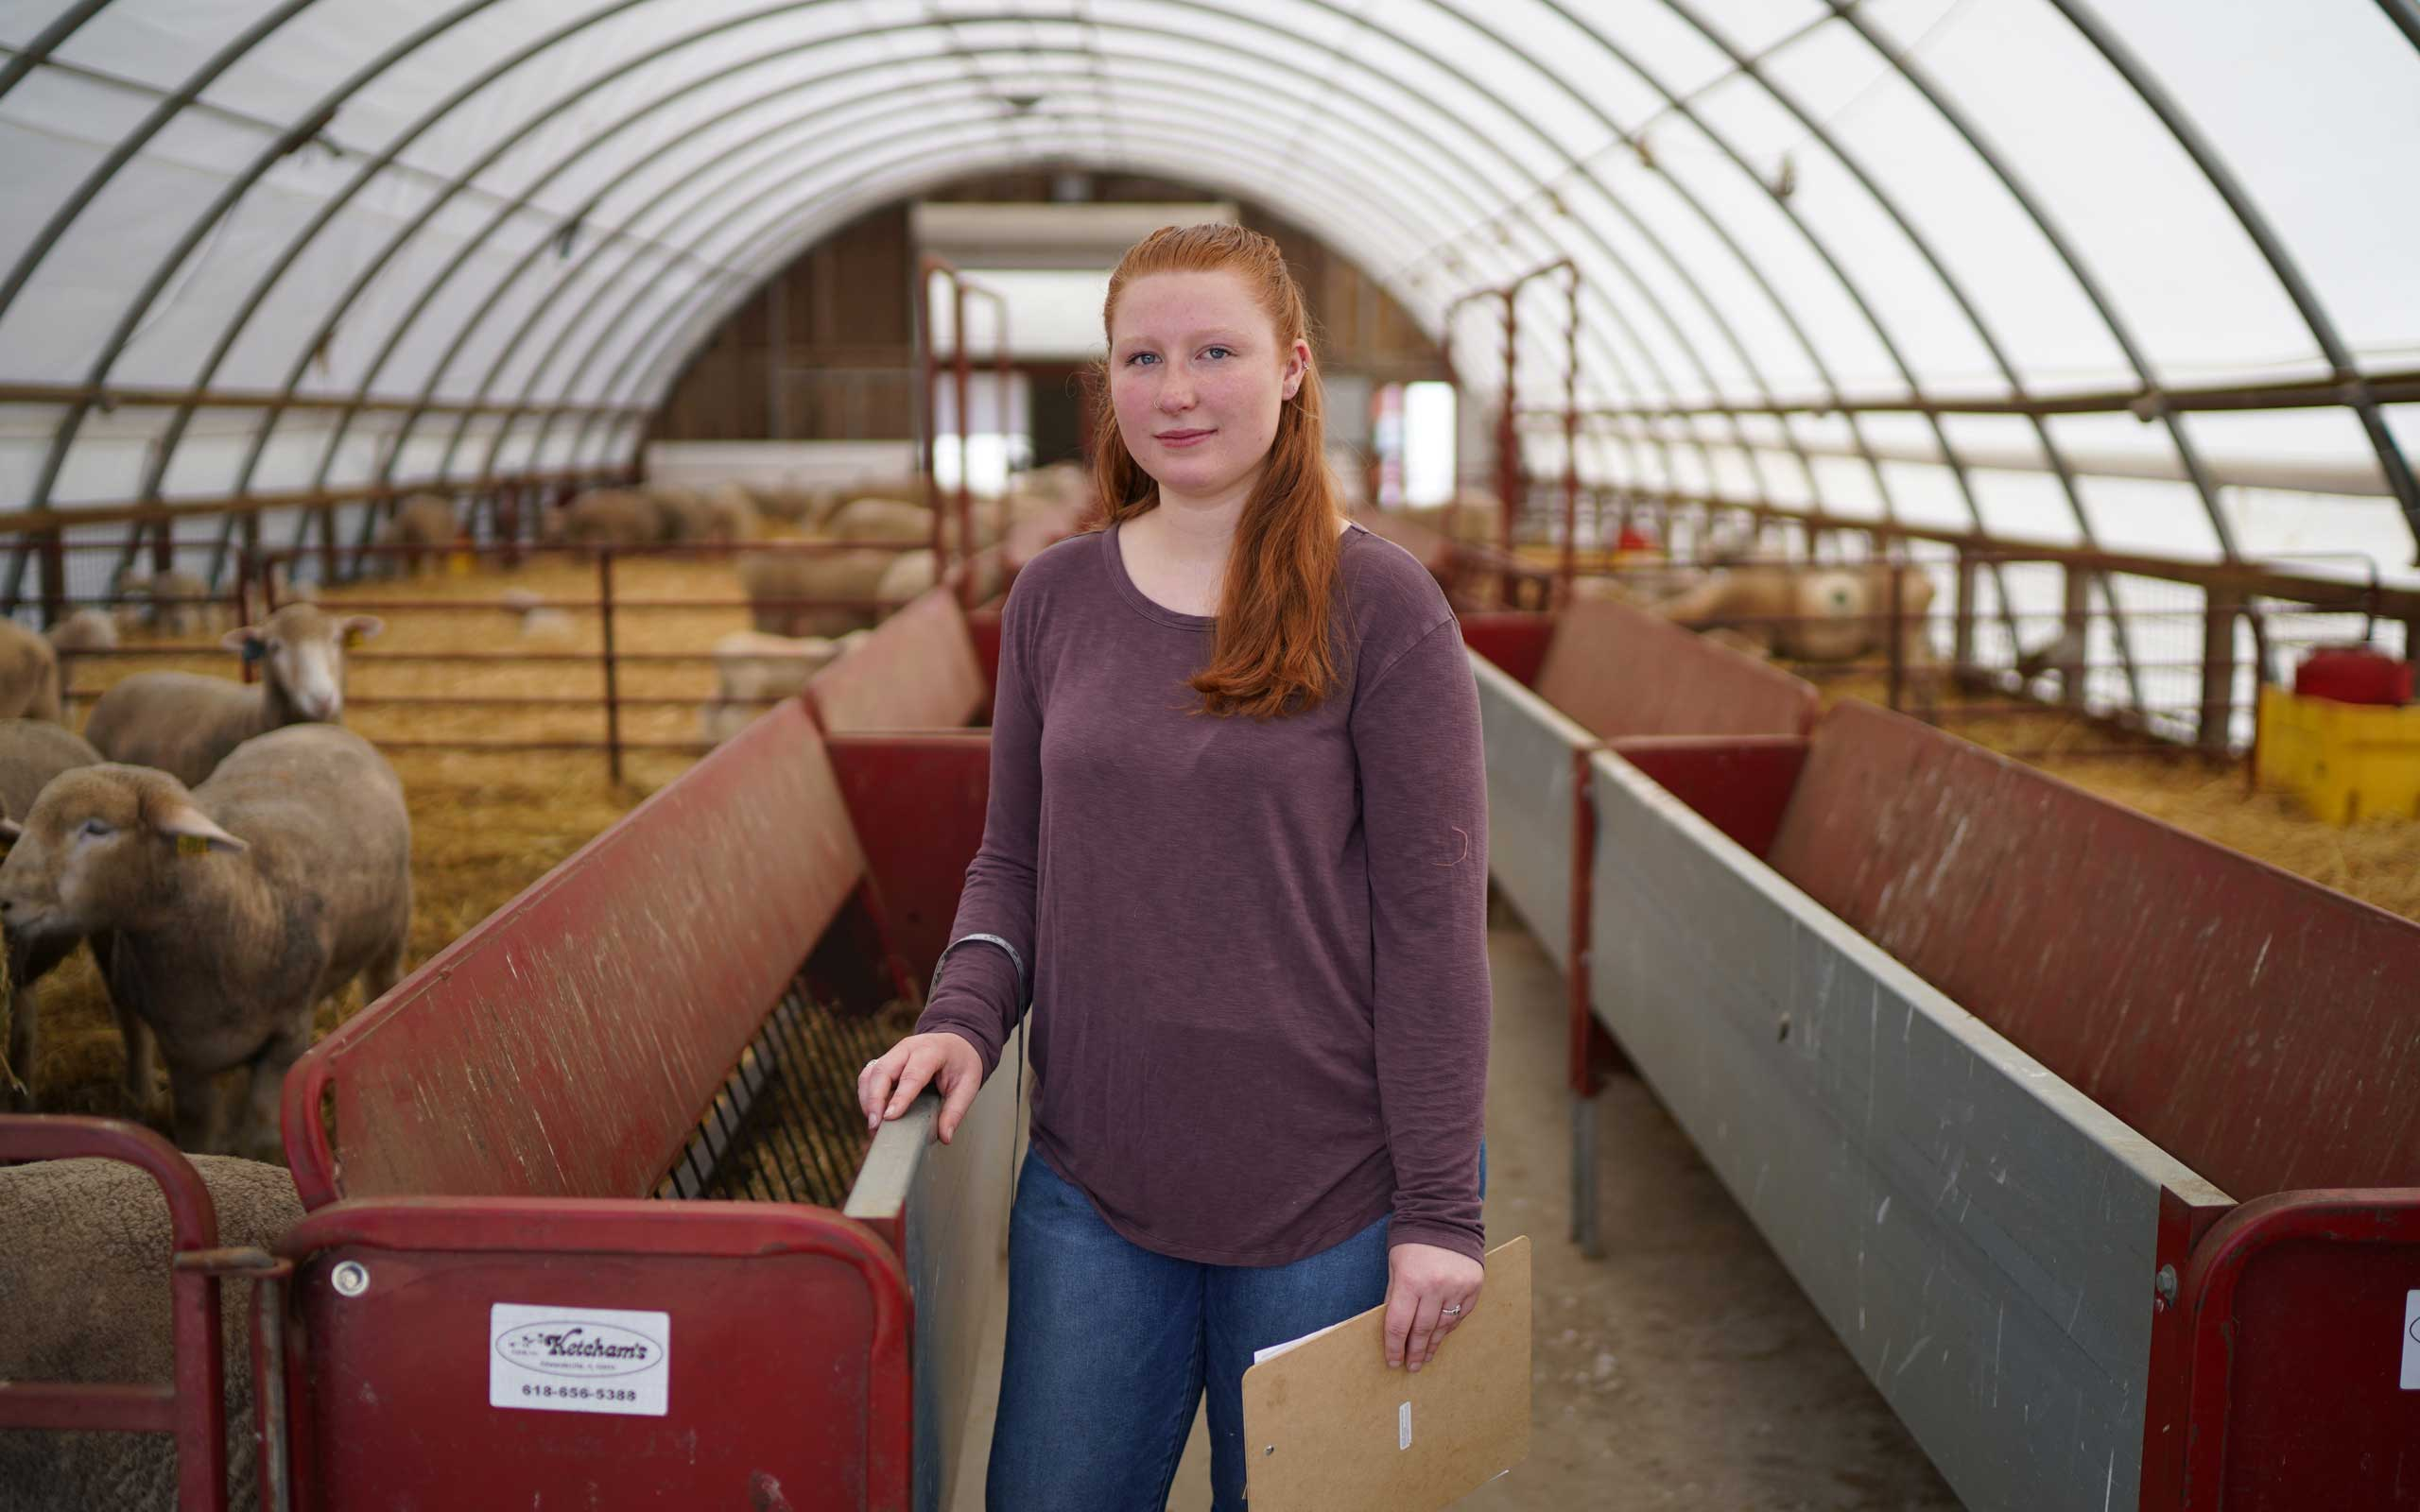 Animal Science major at Julie Bosland at Peckham Farm